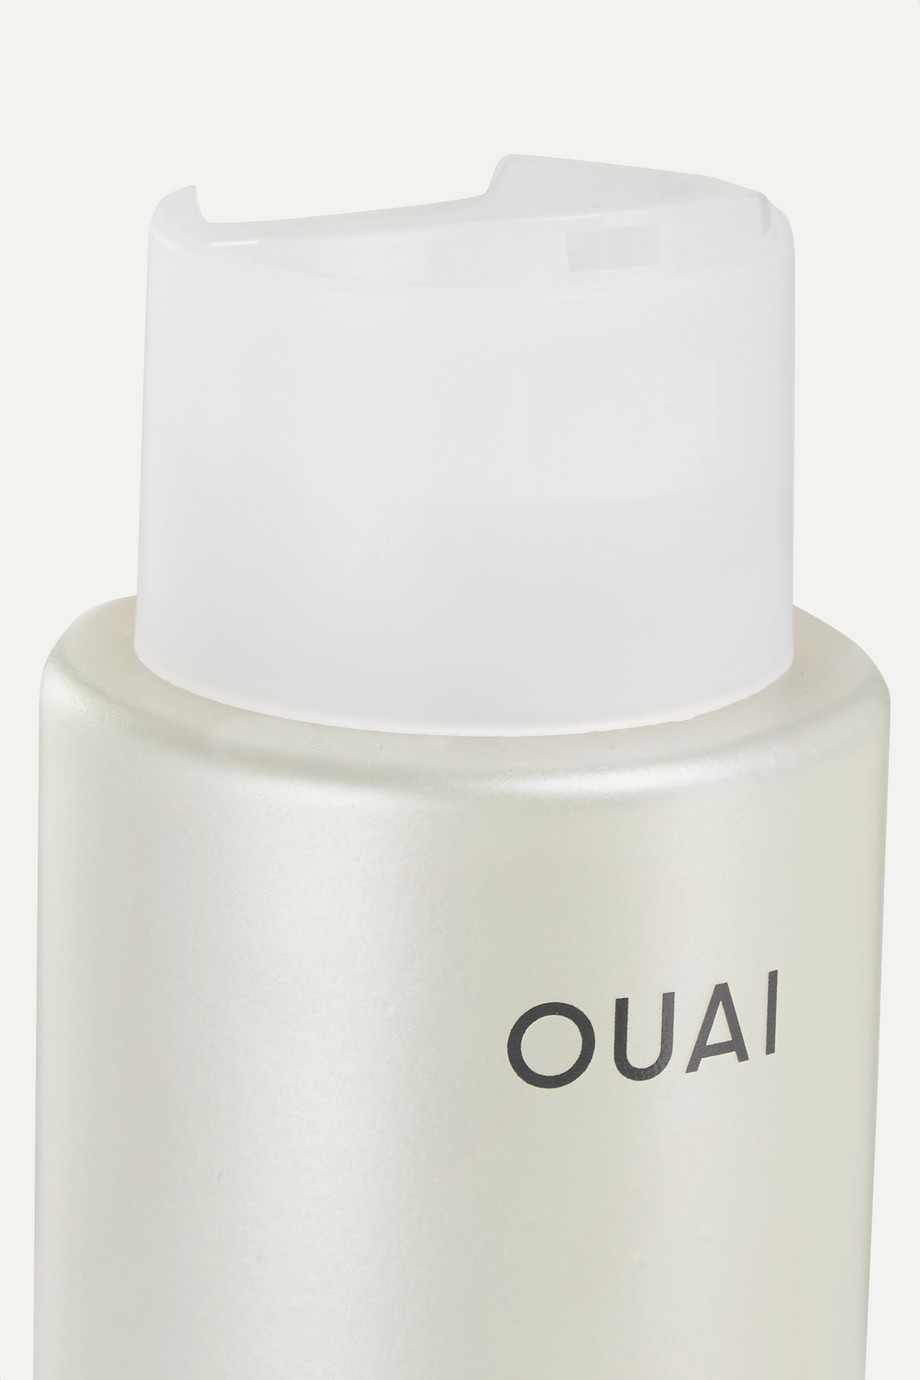 OUAI HAIRCARE Body Cleanser, 300ml